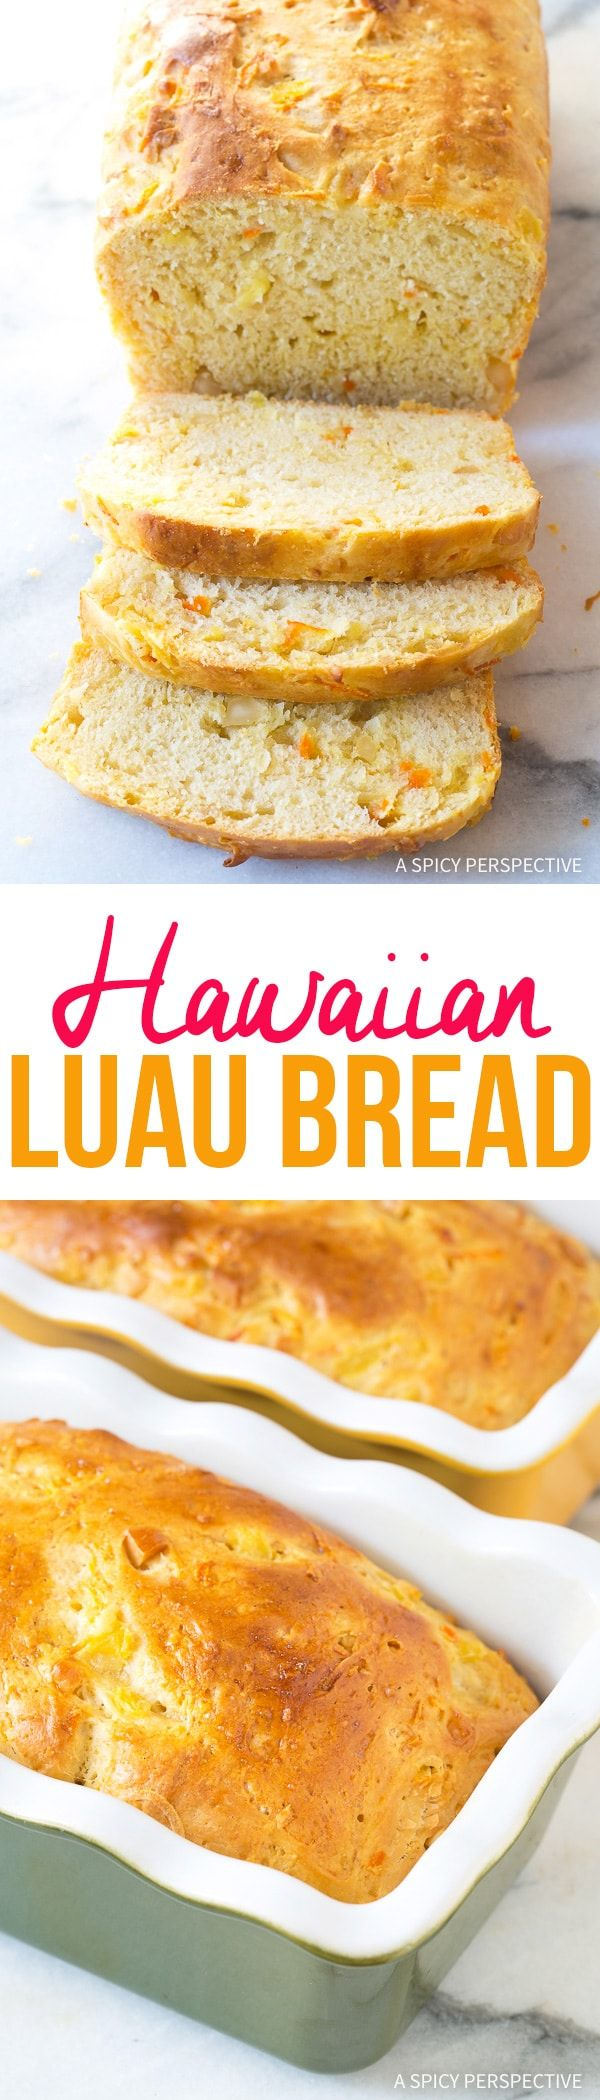 Hawaiian Luau Bread Recipe - Straight from the shores of the Hawaiian Islands, this soft tender yeast bread is speckled with macadamia nuts, carrots, pineapple and coconut! via @spicyperspectiv